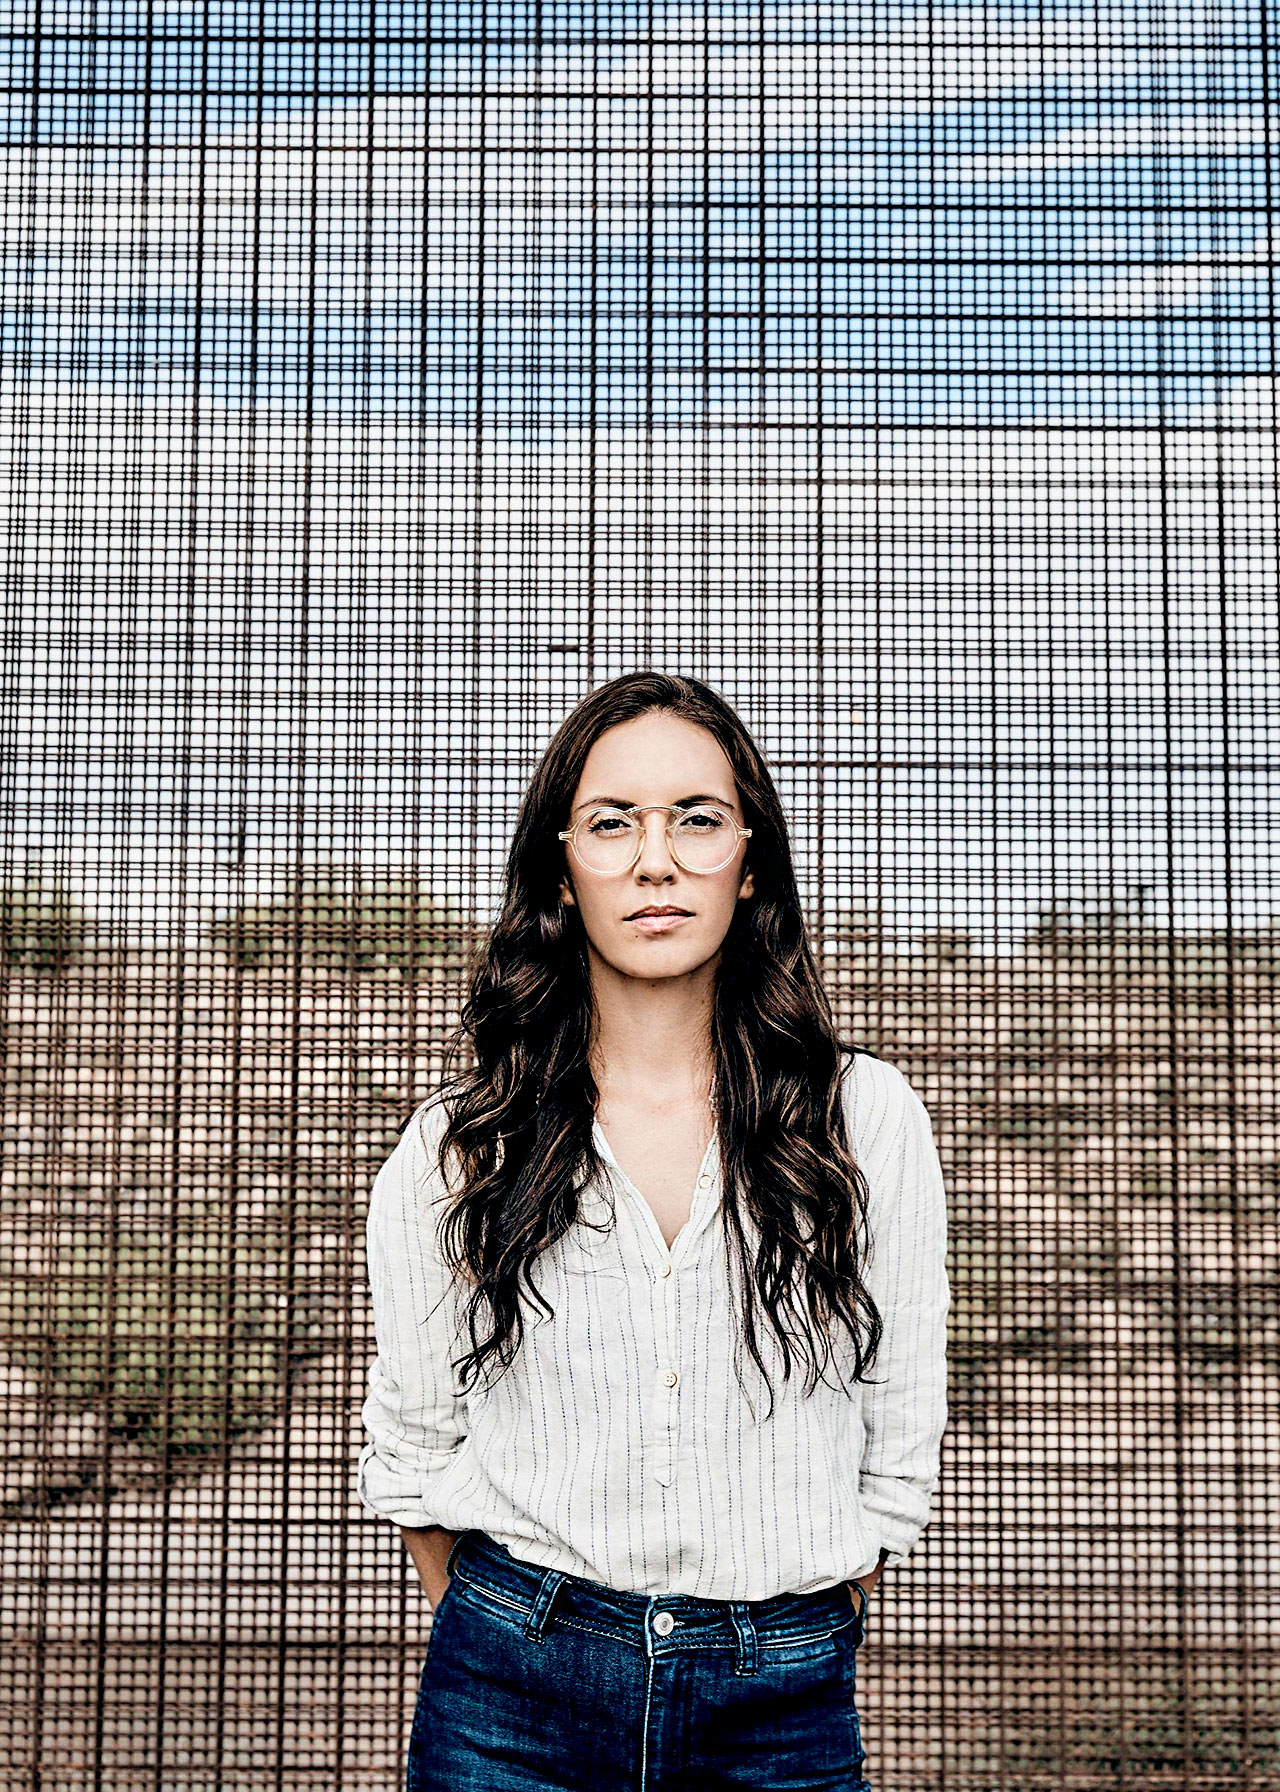 Paola Mendoza at the border fence in El Paso